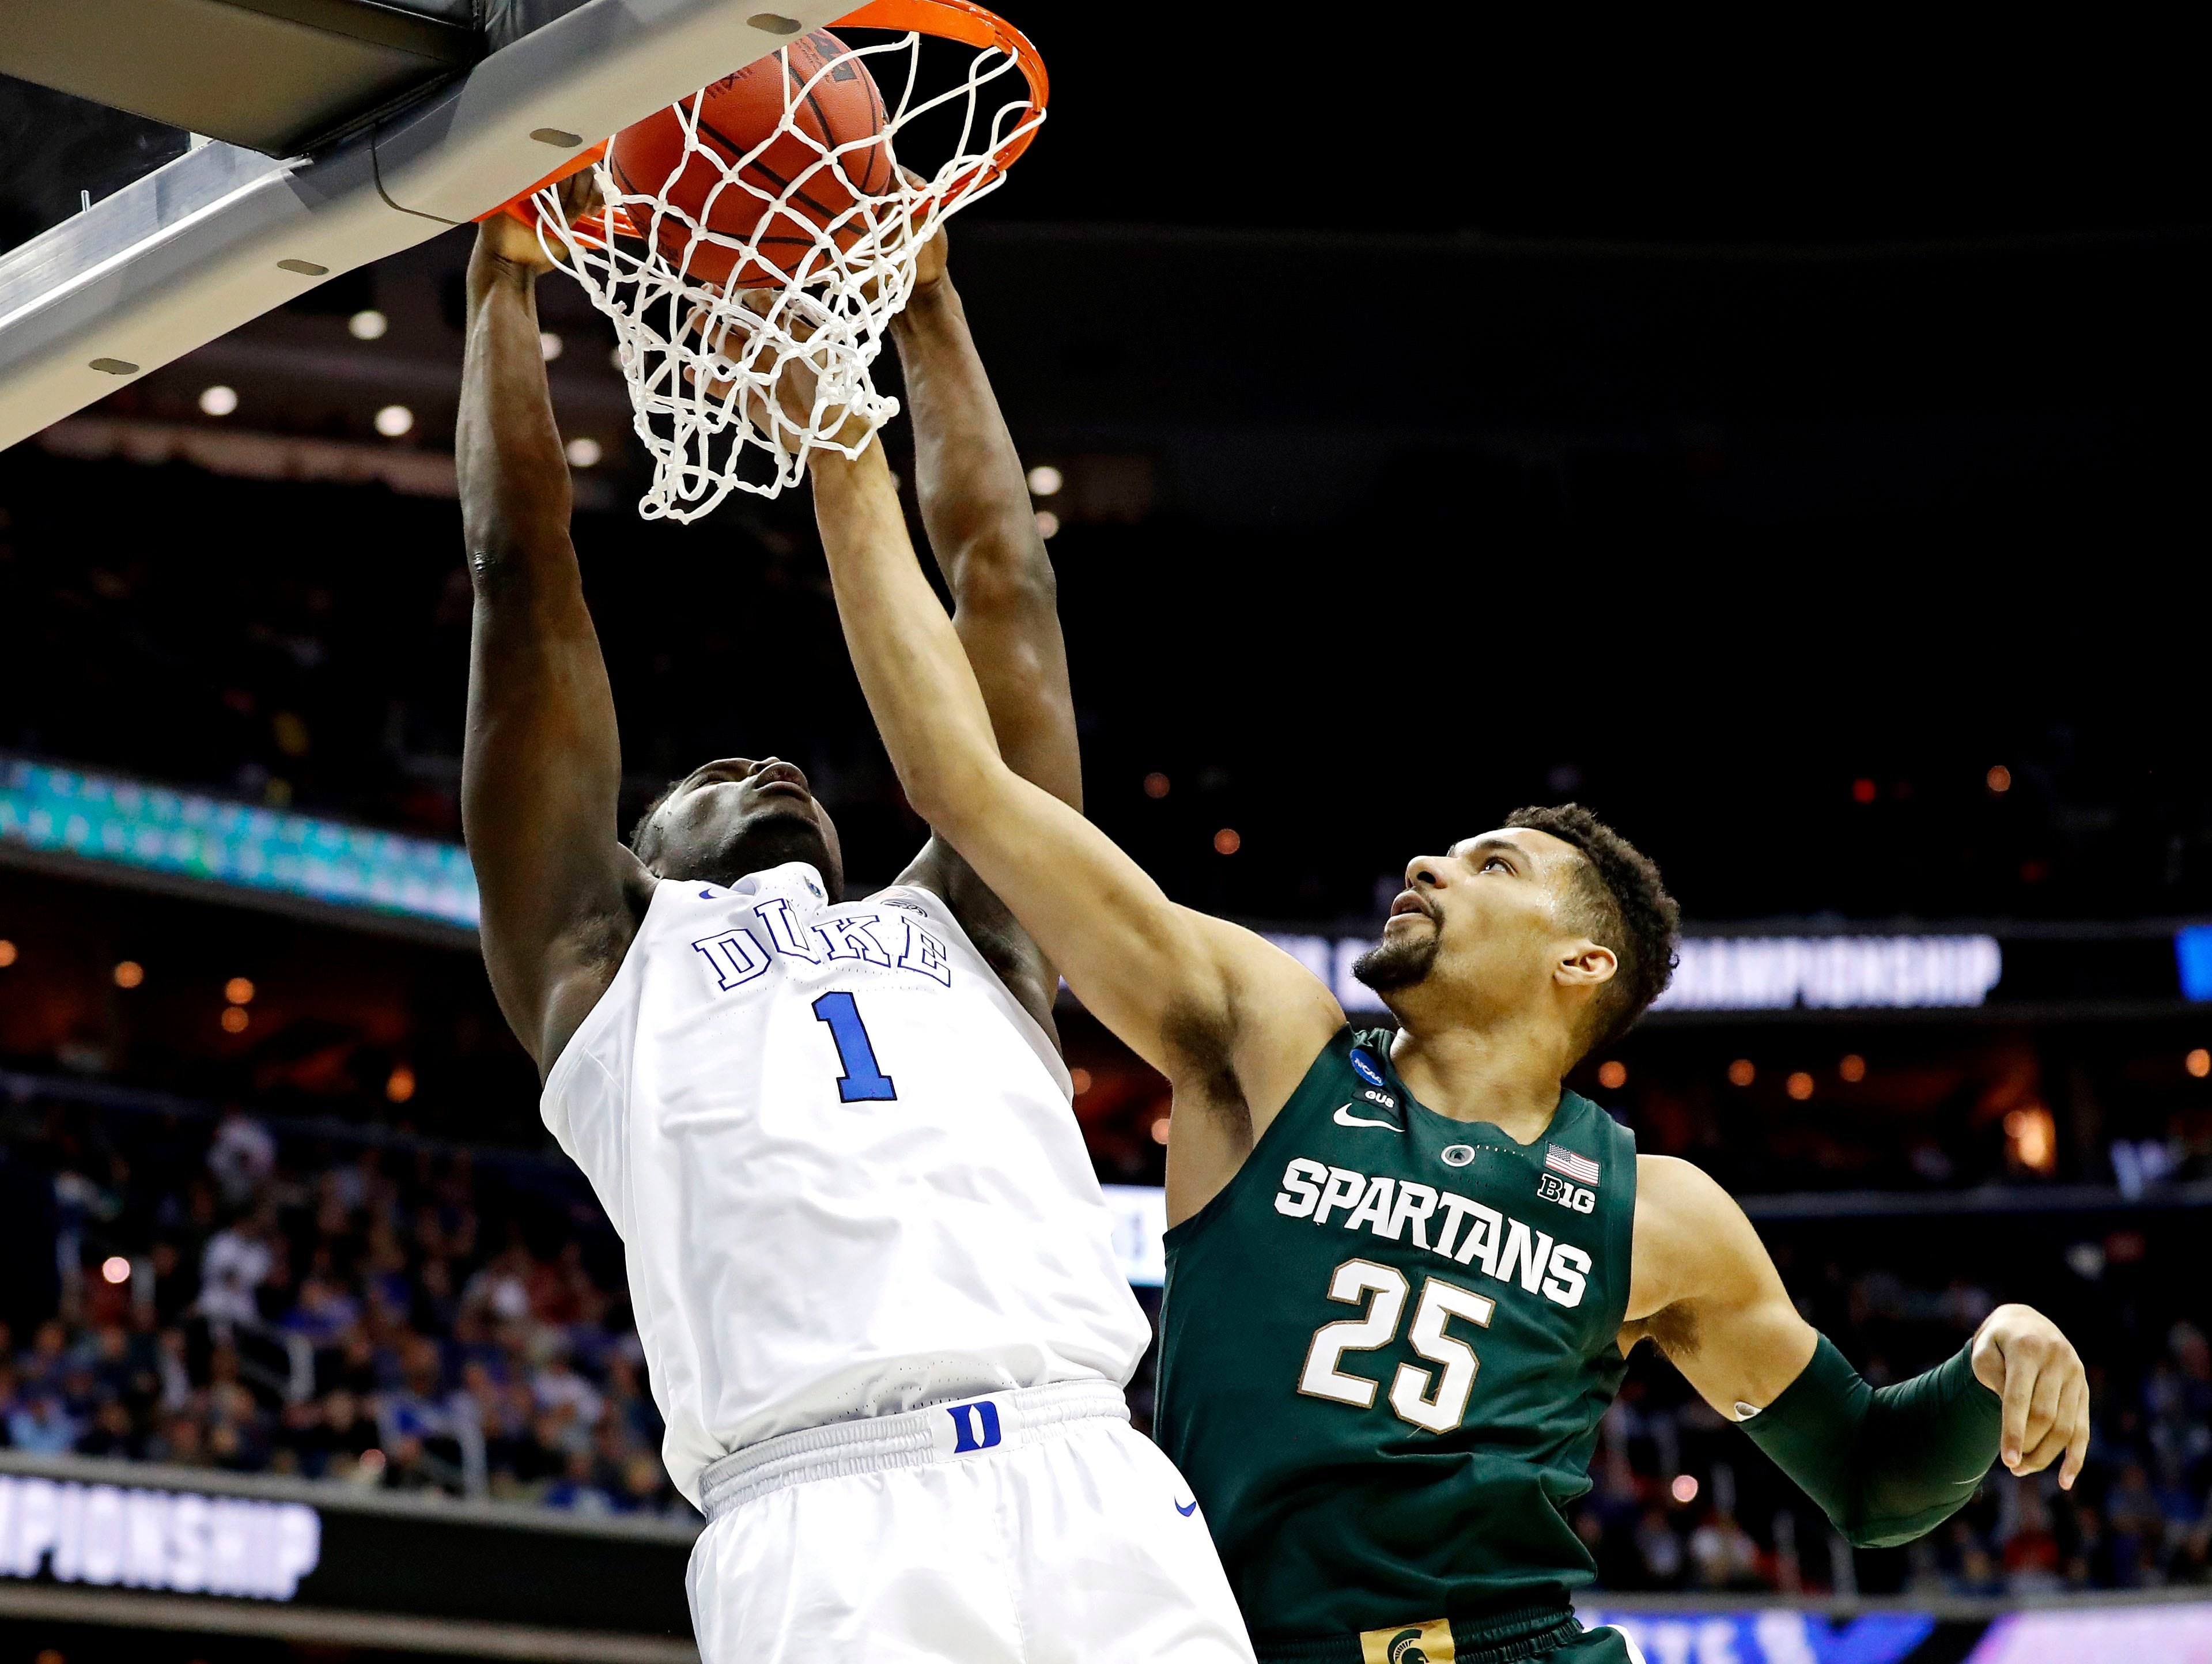 Mar 31, 2019; Washington, DC, USA; Duke Blue Devils forward Zion Williamson (1) dunks the ball against  in the championship game of the east regional of the 2019 NCAA Tournament at Capital One Arena. Mandatory Credit: Geoff Burke-USA TODAY Sports